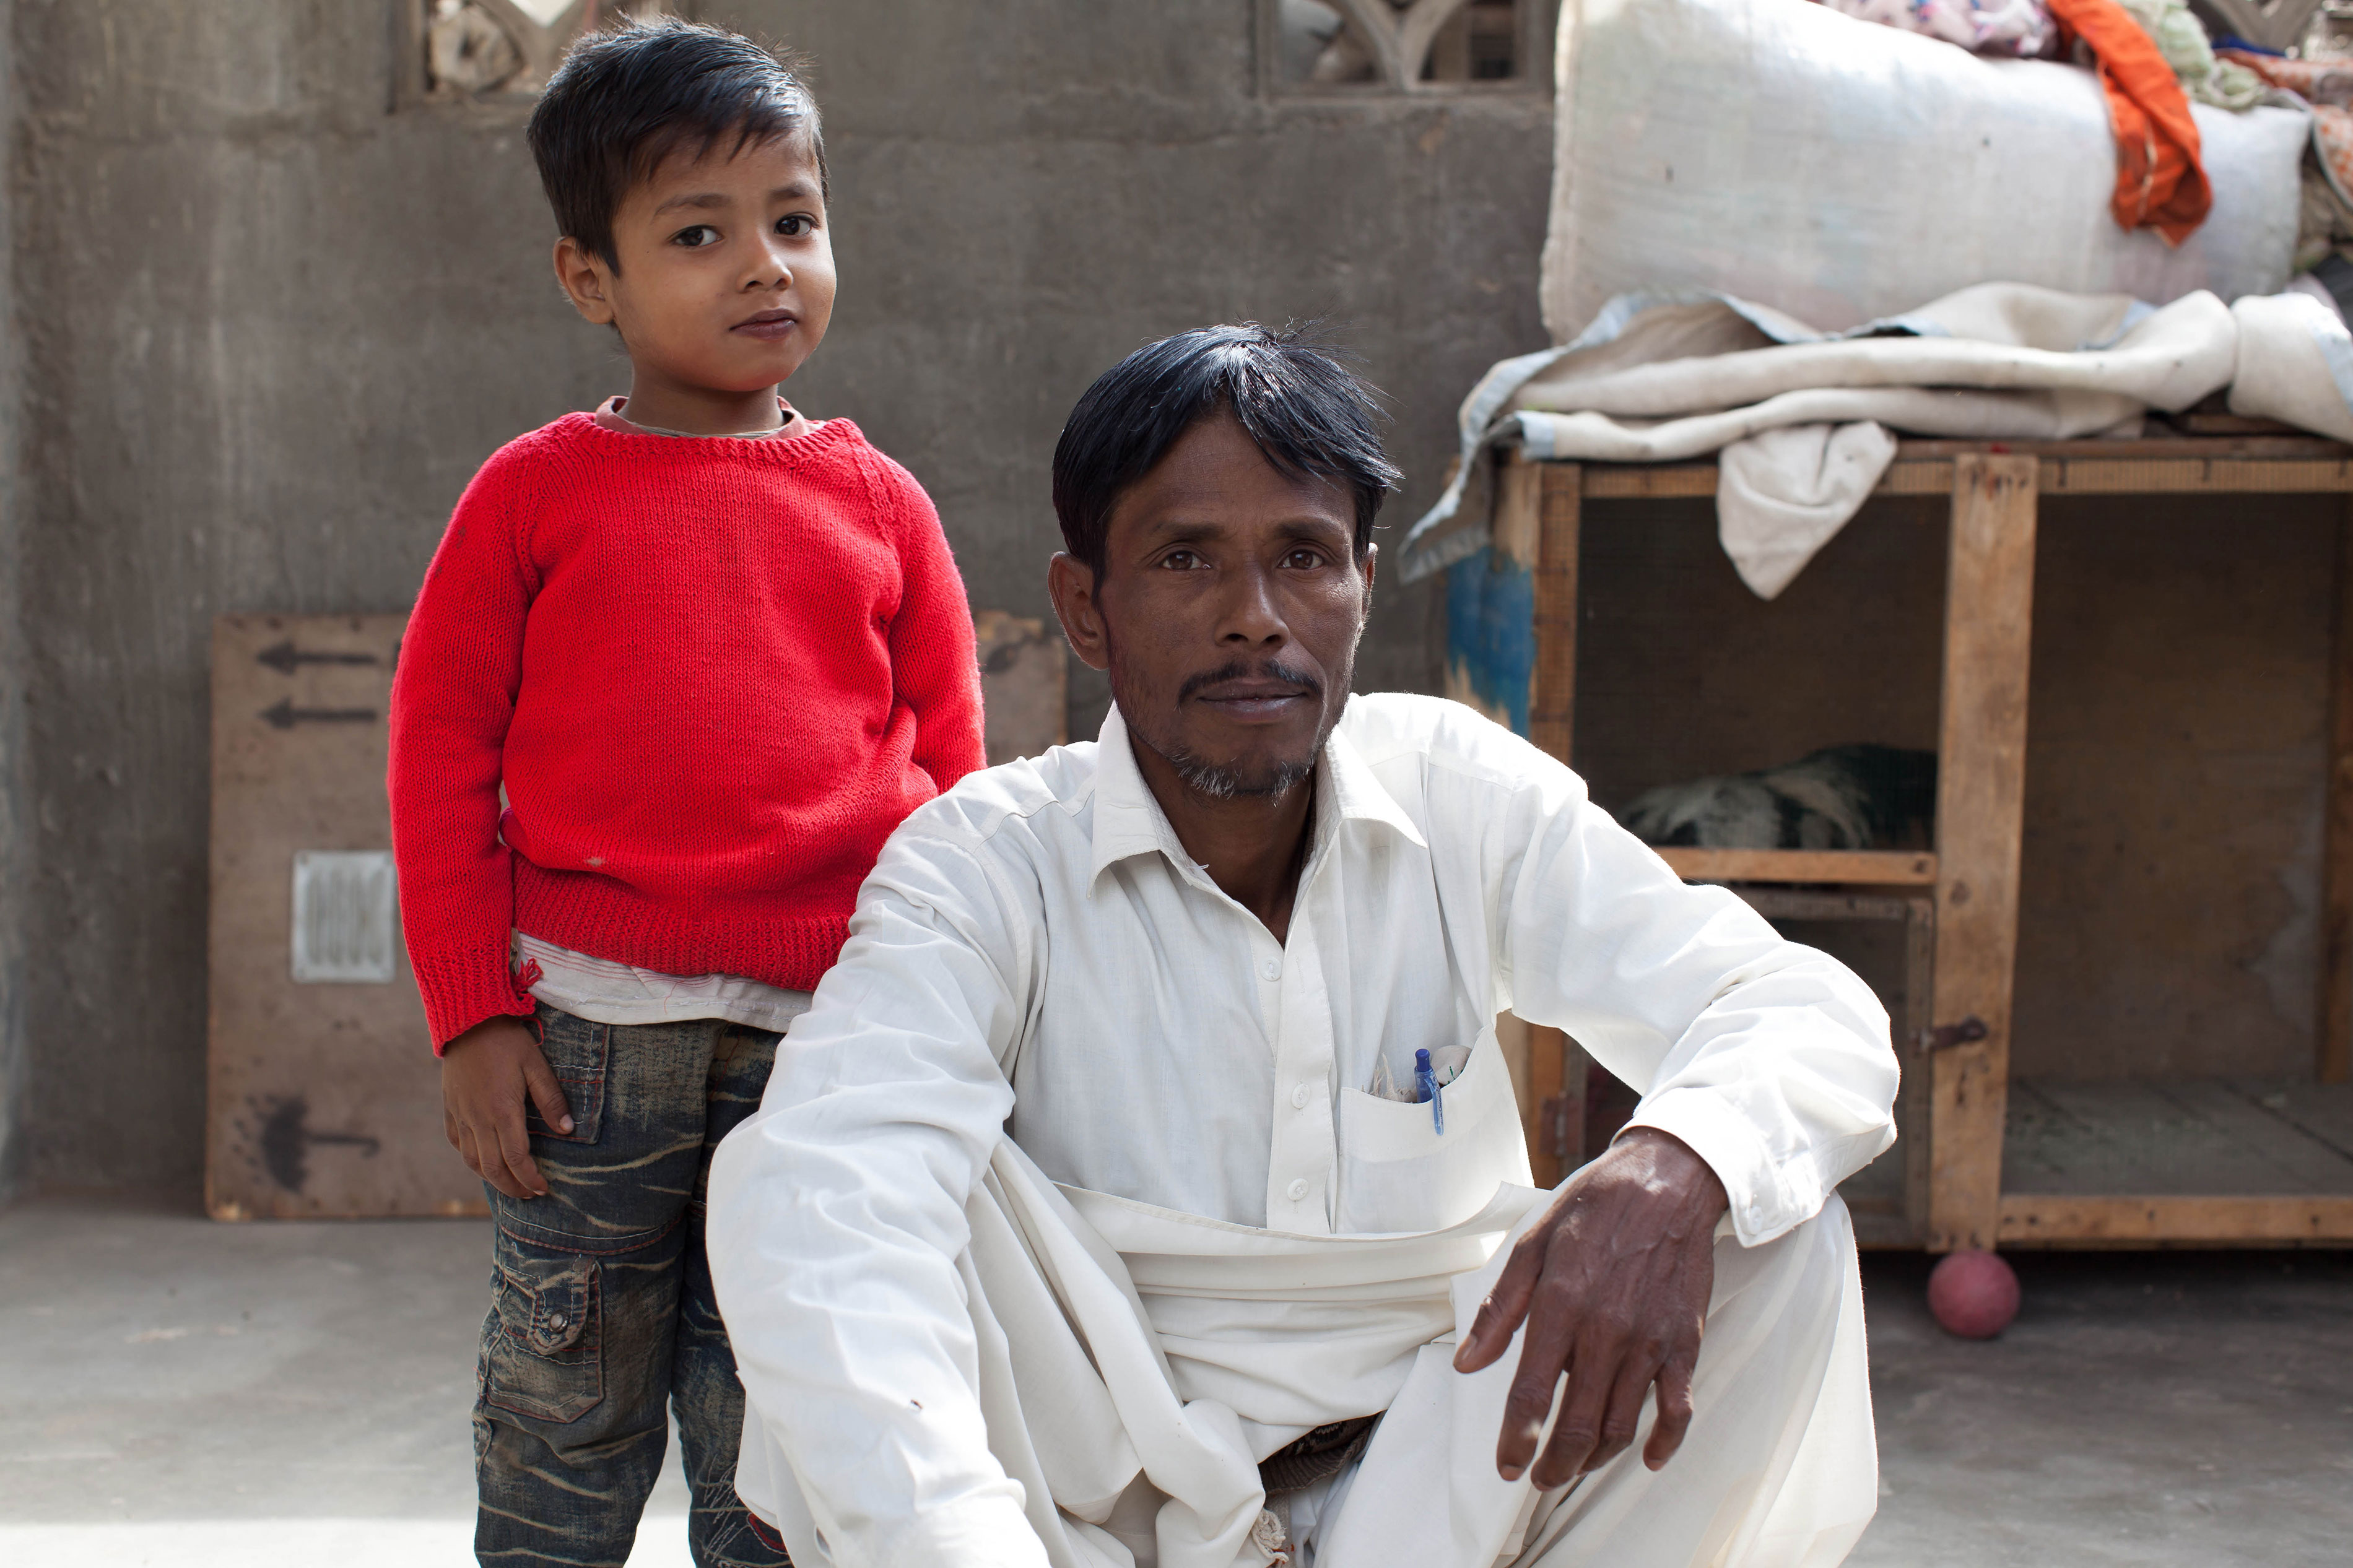 Noor Alam (pictured here with his son) was cured of Hepatitis C at MSF's Machar Clinic in Pakistan in 2016 after recieving a generic version of sofosbuvir. Gilead has priced sofosbuvir at $1,000 per pill in the U.S., despite the fact that manufacturers in India say they could produce this drug for as little as about $1 per pill.